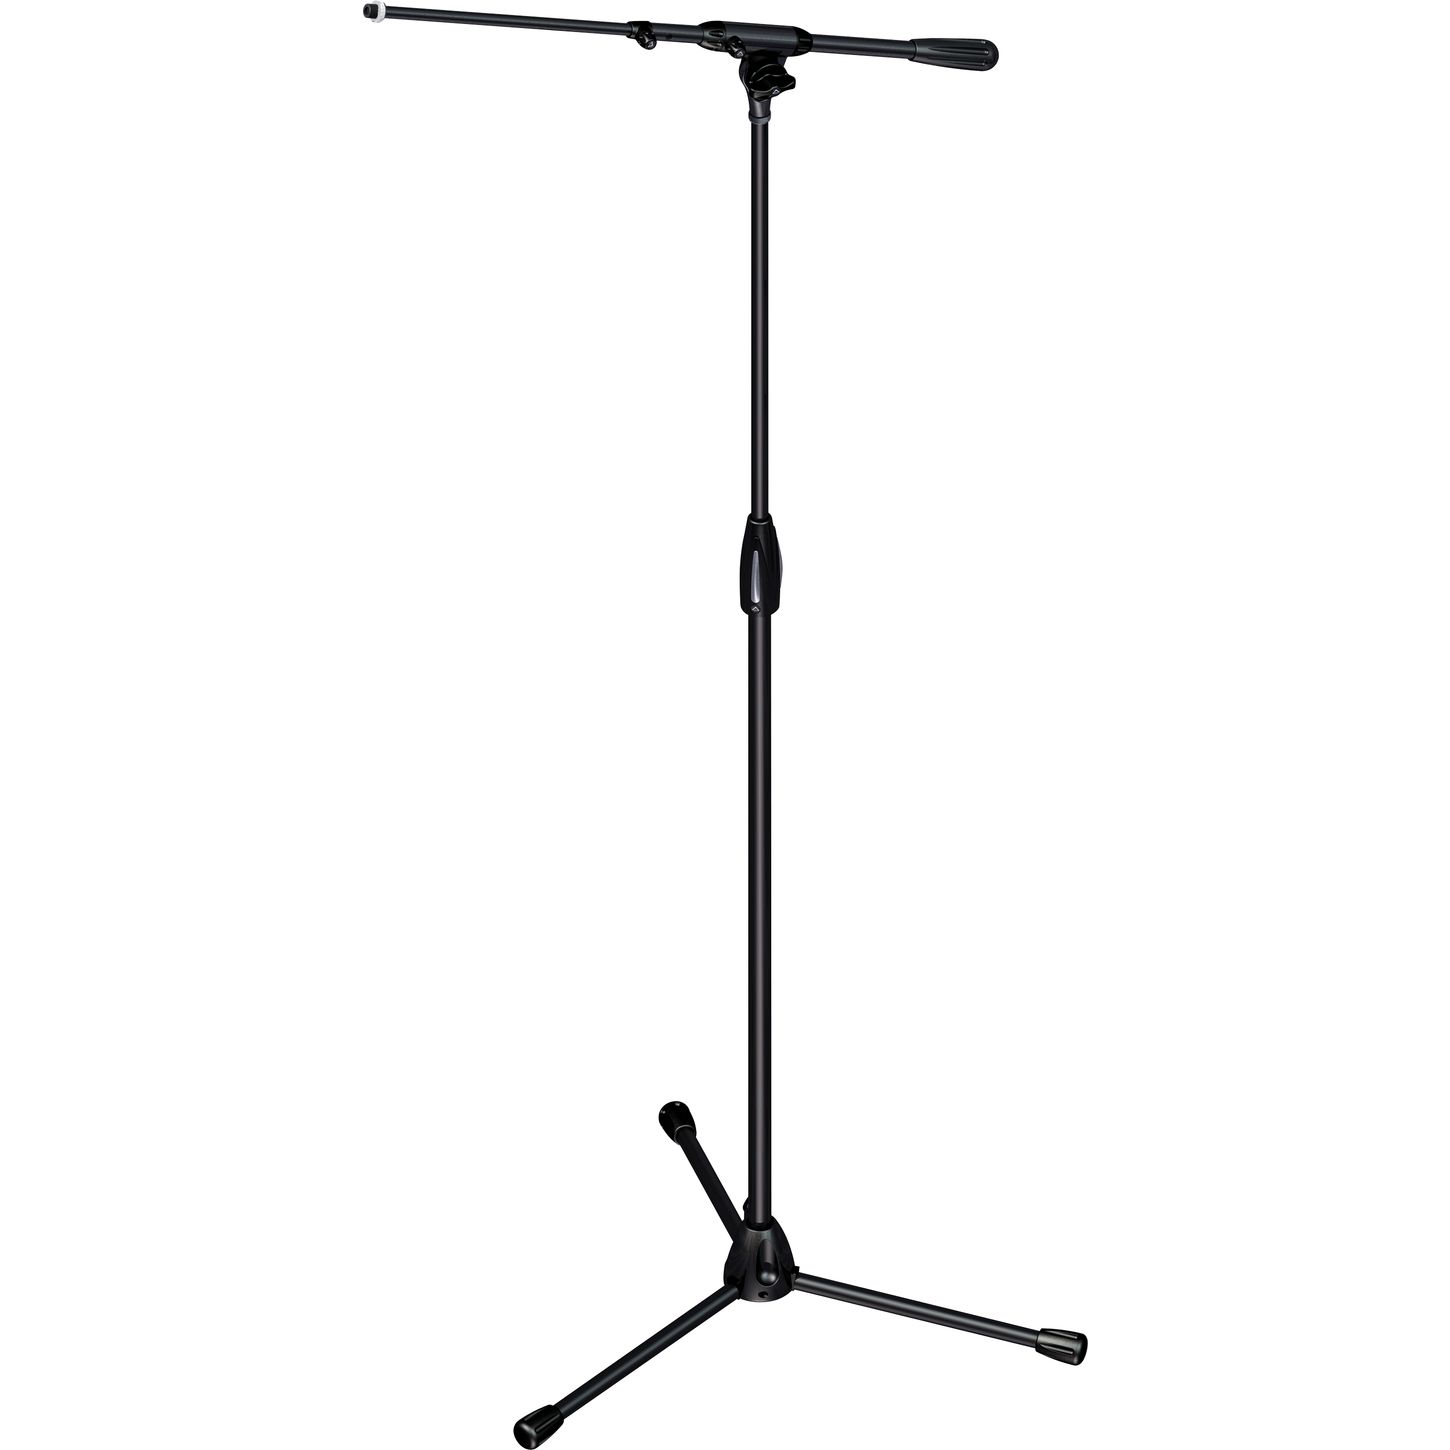 Microphone Stand Clip Art | Clipart Panda - Free Clipart Images